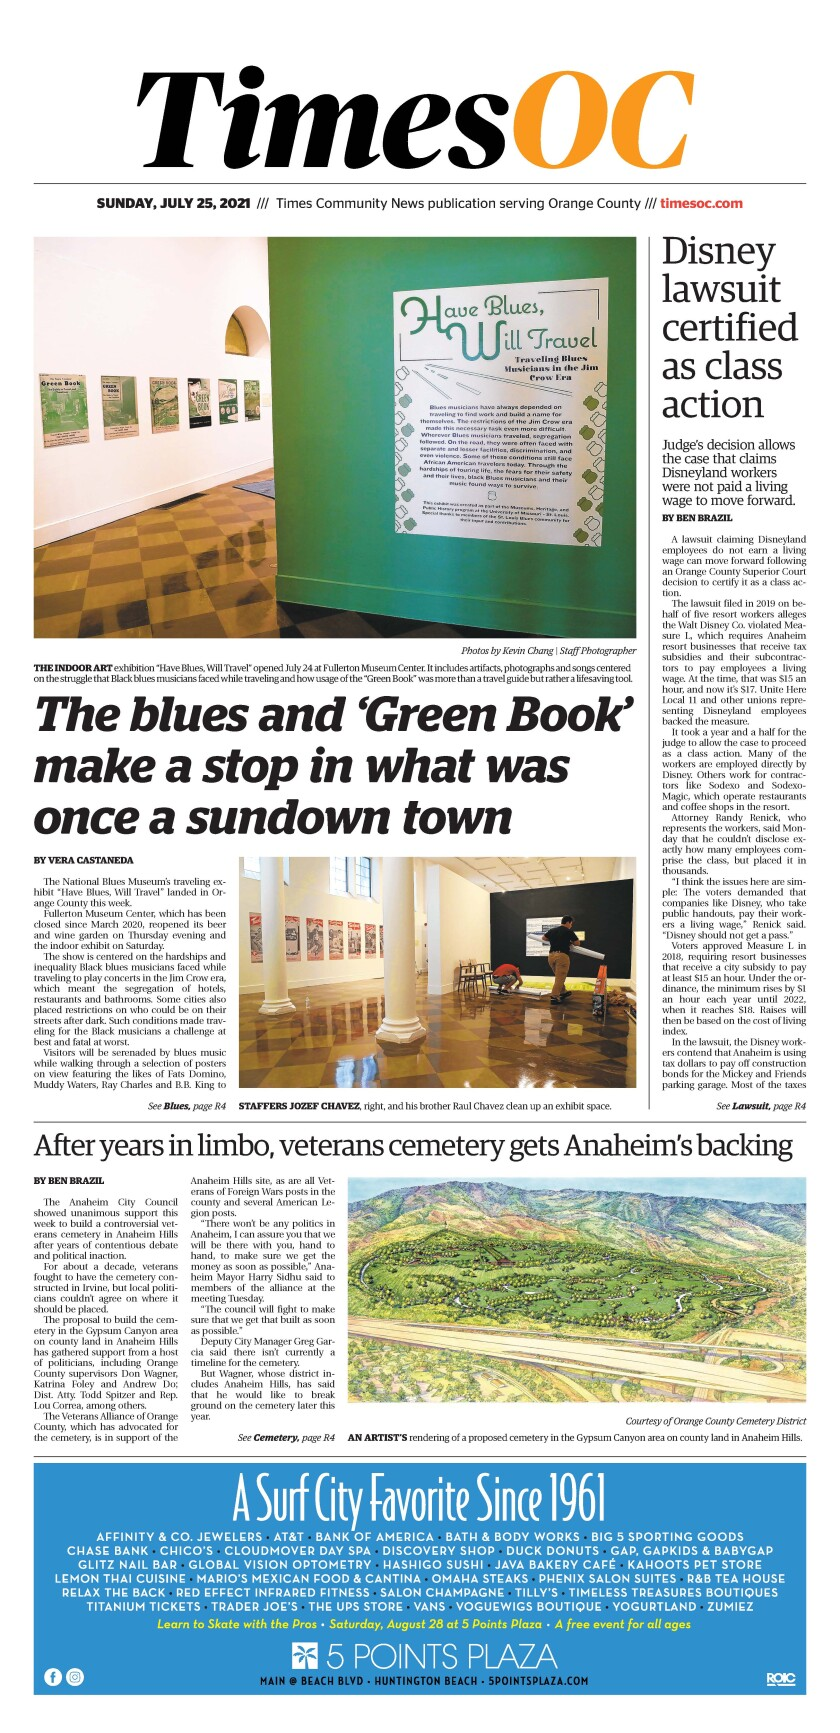 Front page of TimesOC e-newspaper for Sunday, July 25, 2021.